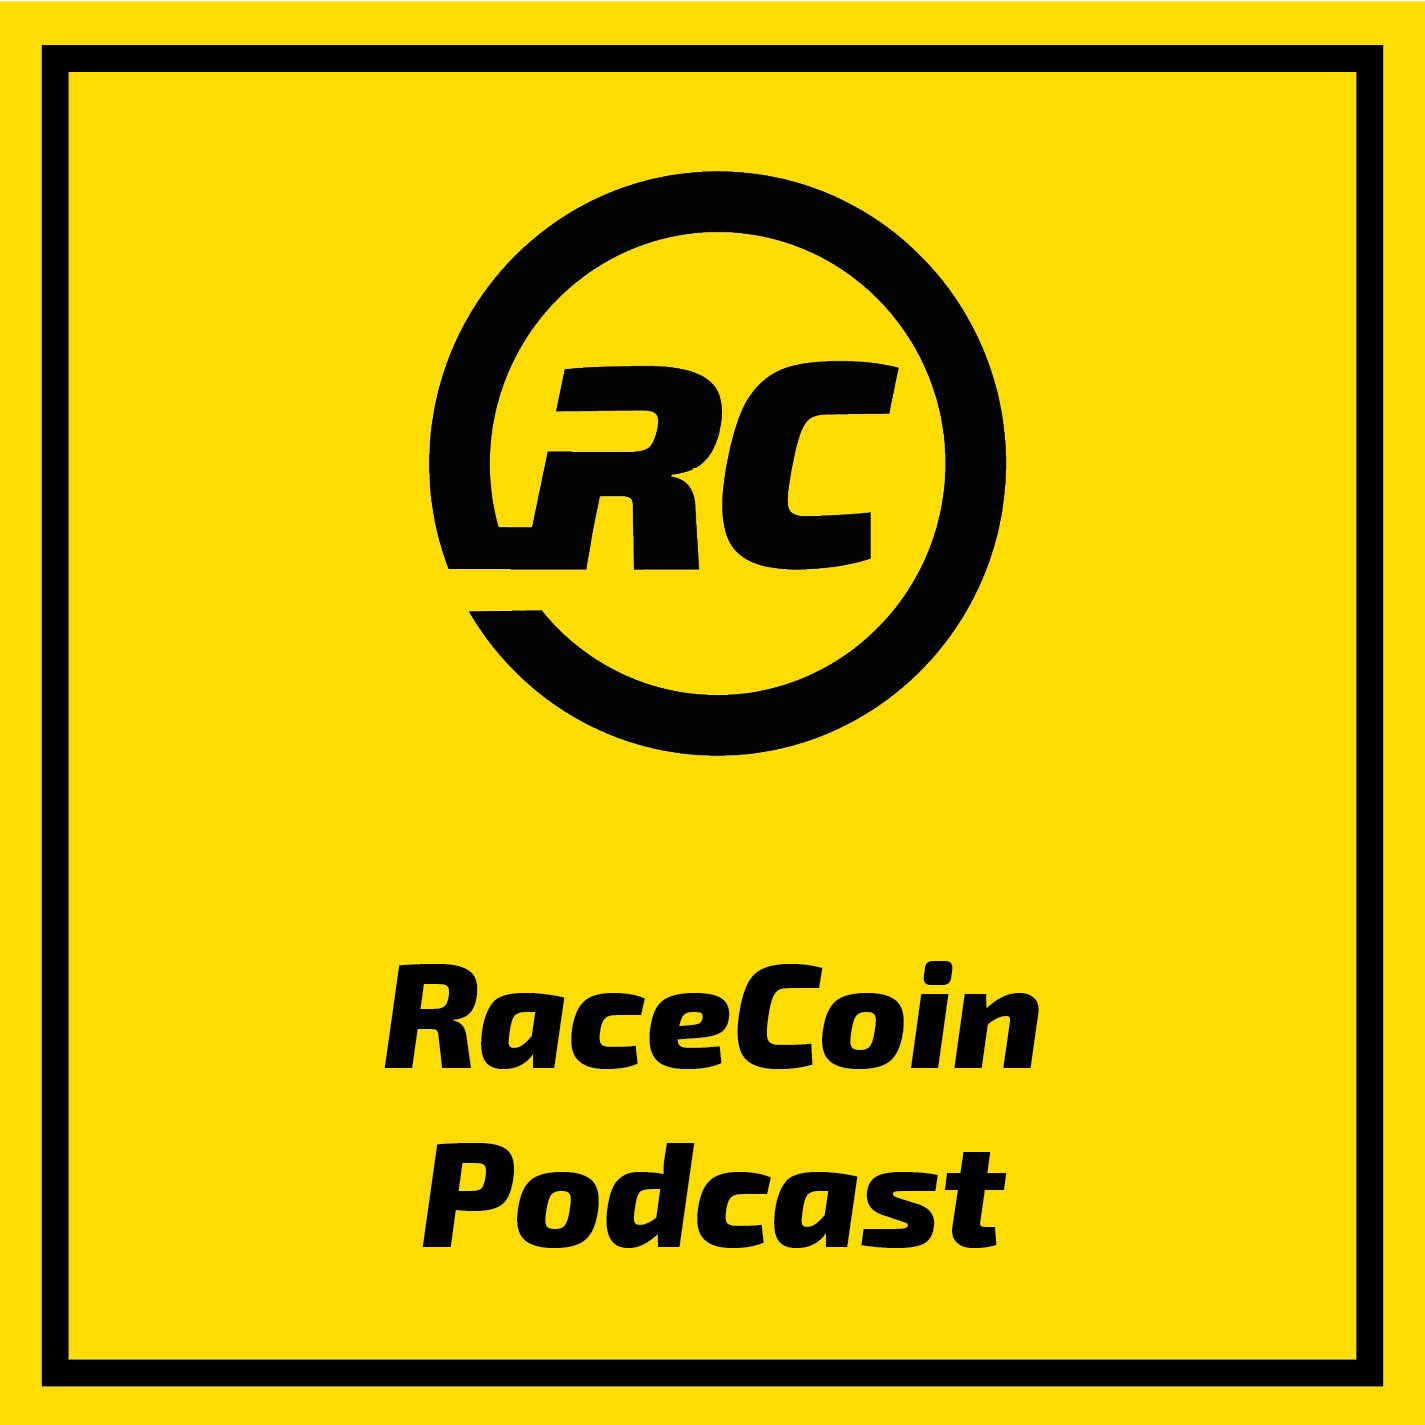 RaceCoin Podcast show art